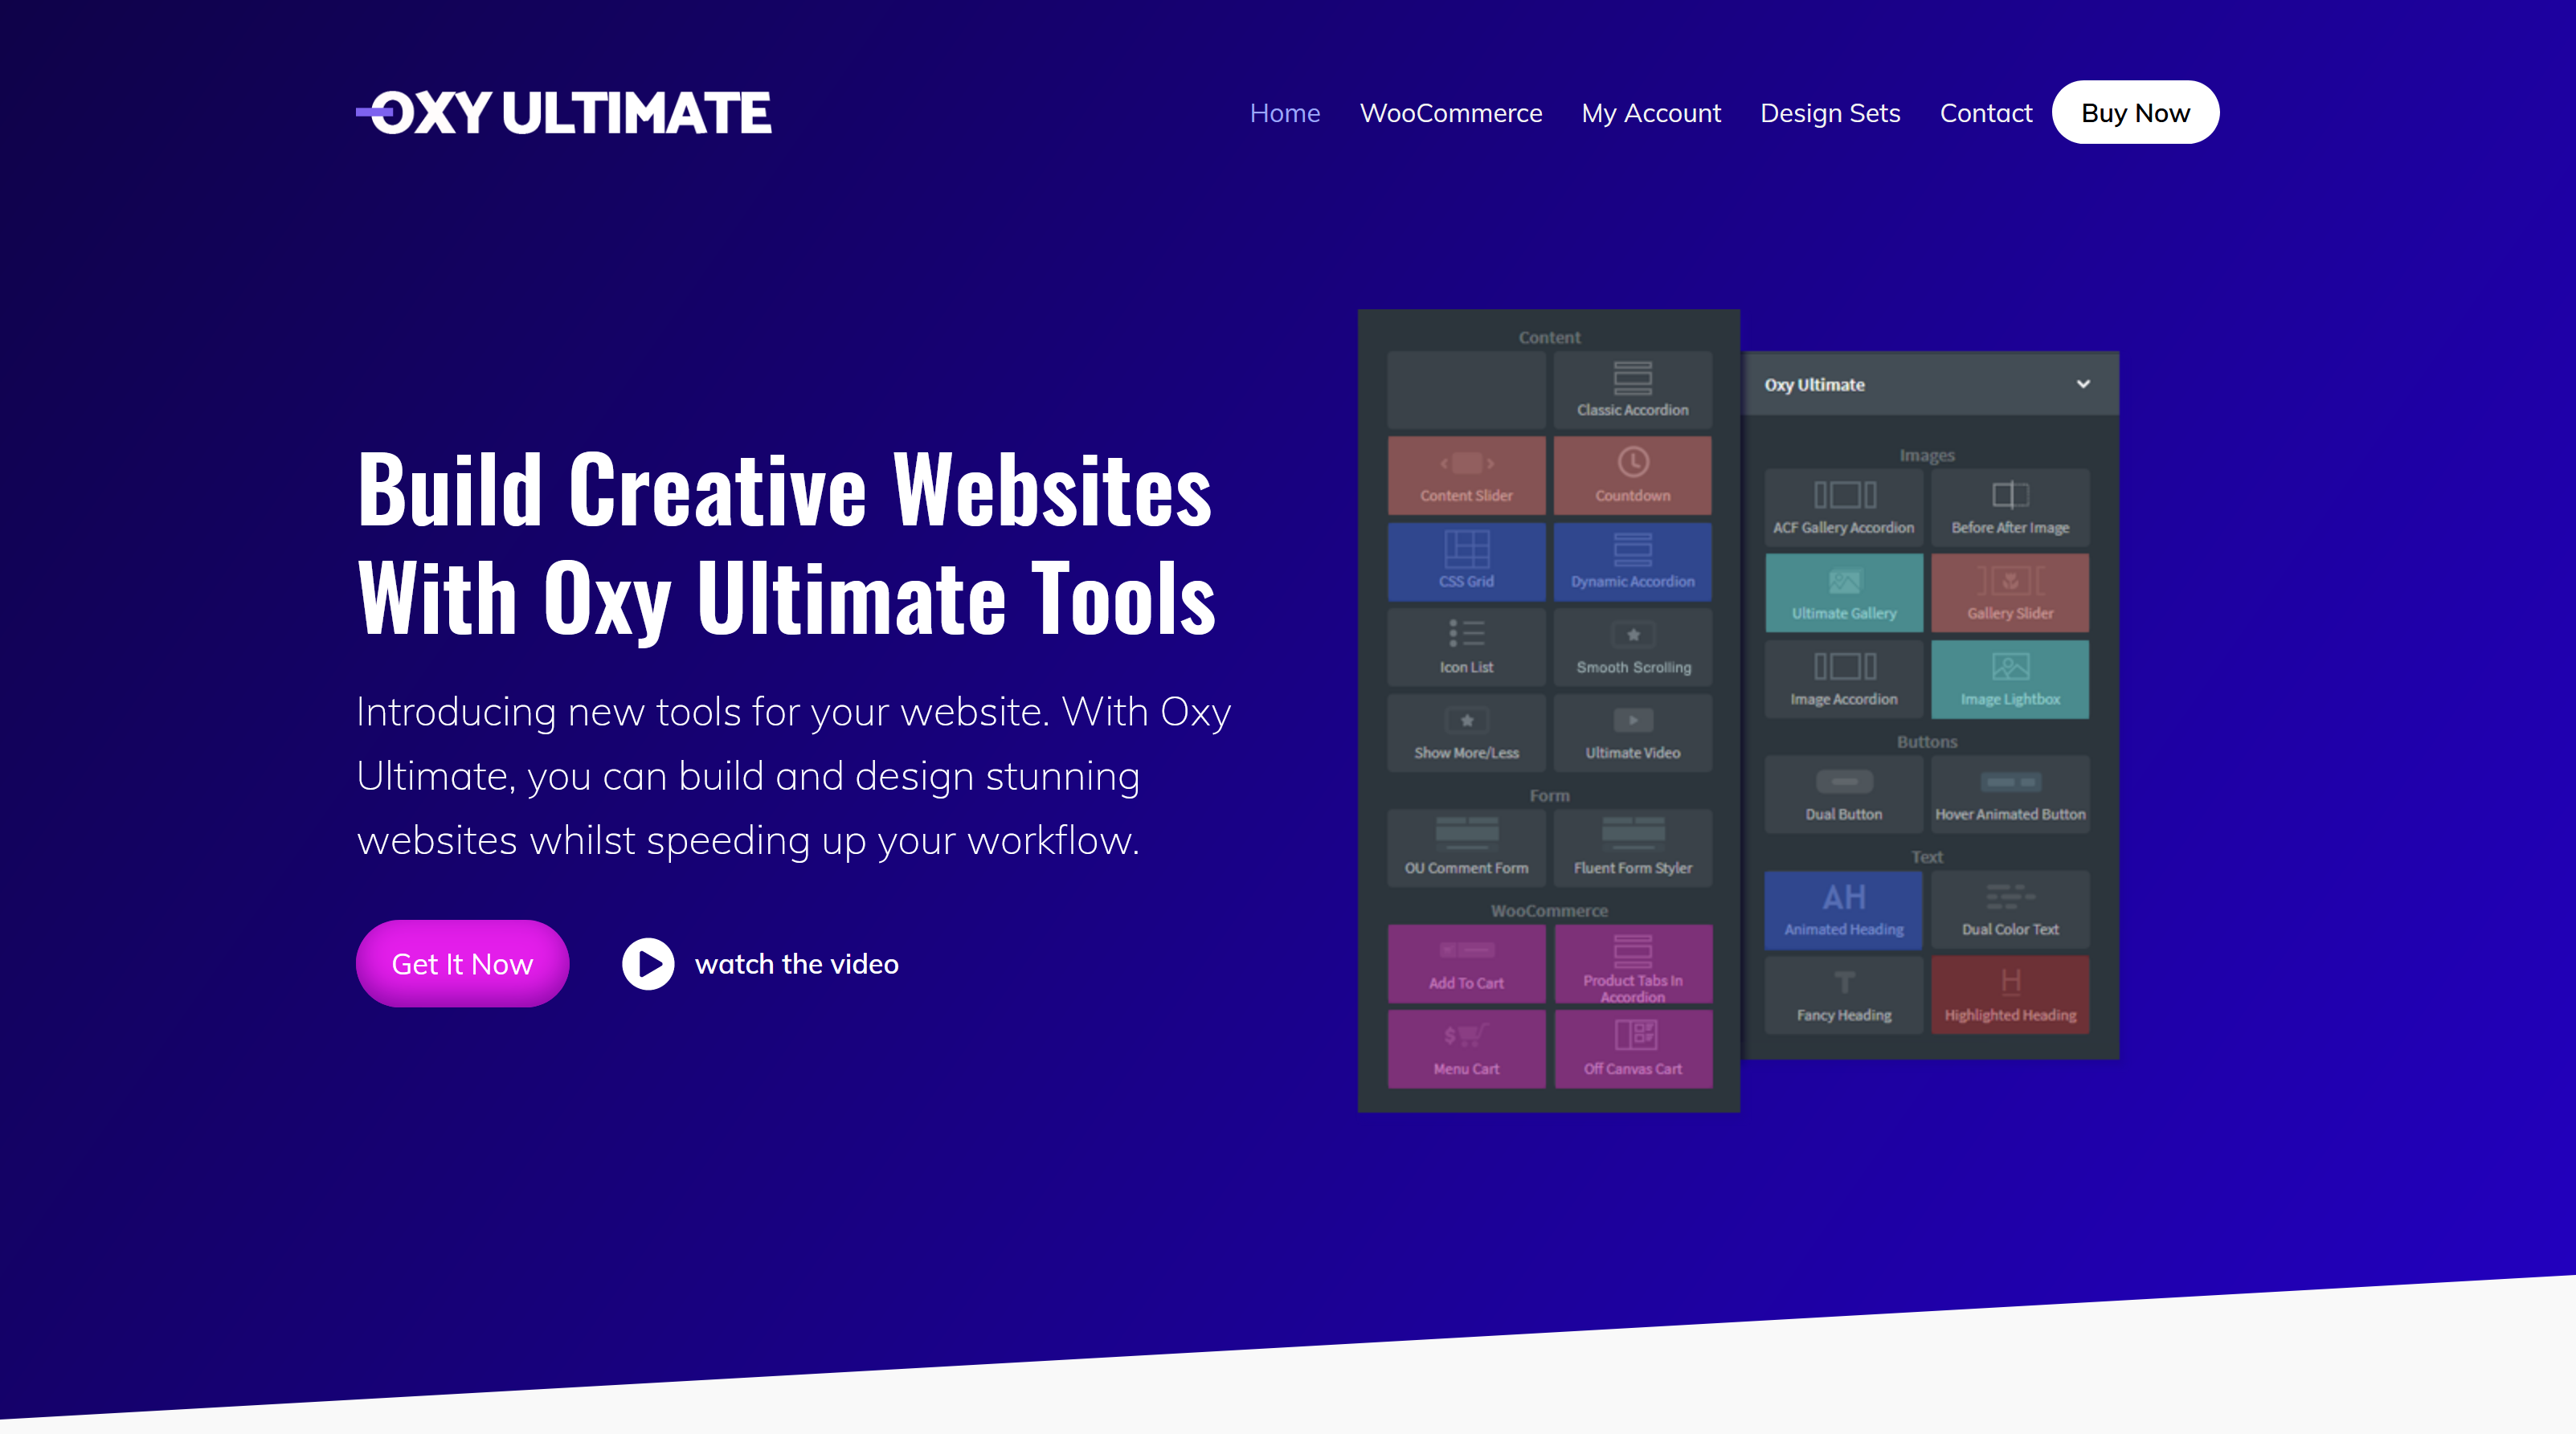 Oxy Ultimate 1.4.13 + Ultimate Woo 1.1.10 – Build Creative Websites With Oxy Ultimate Tools